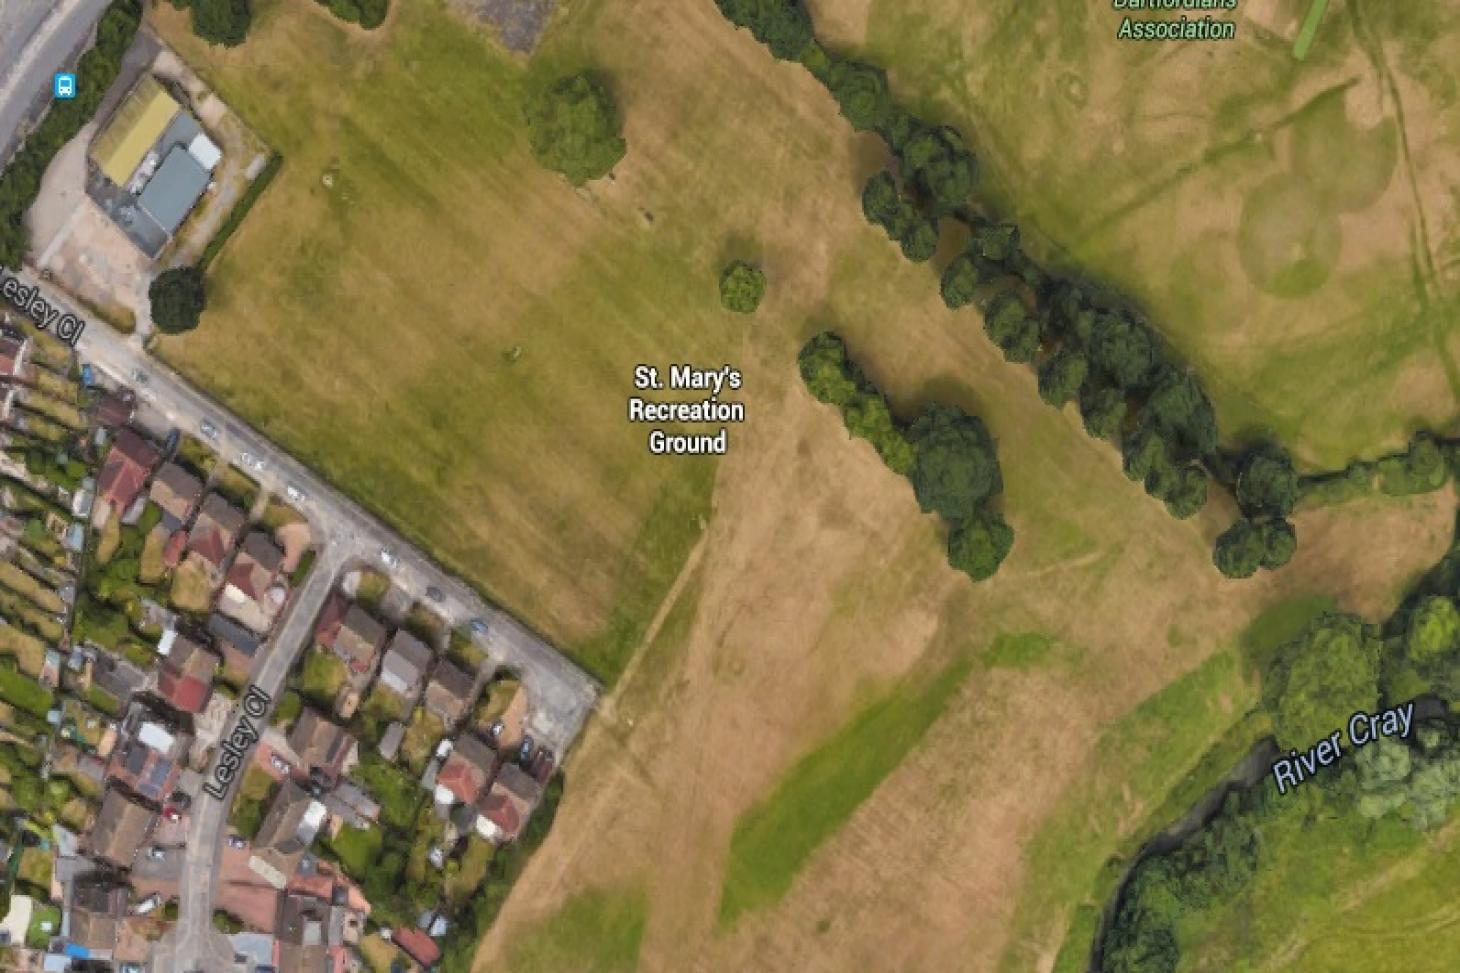 St Mary's Recreation Ground 11 a side | Grass football pitch